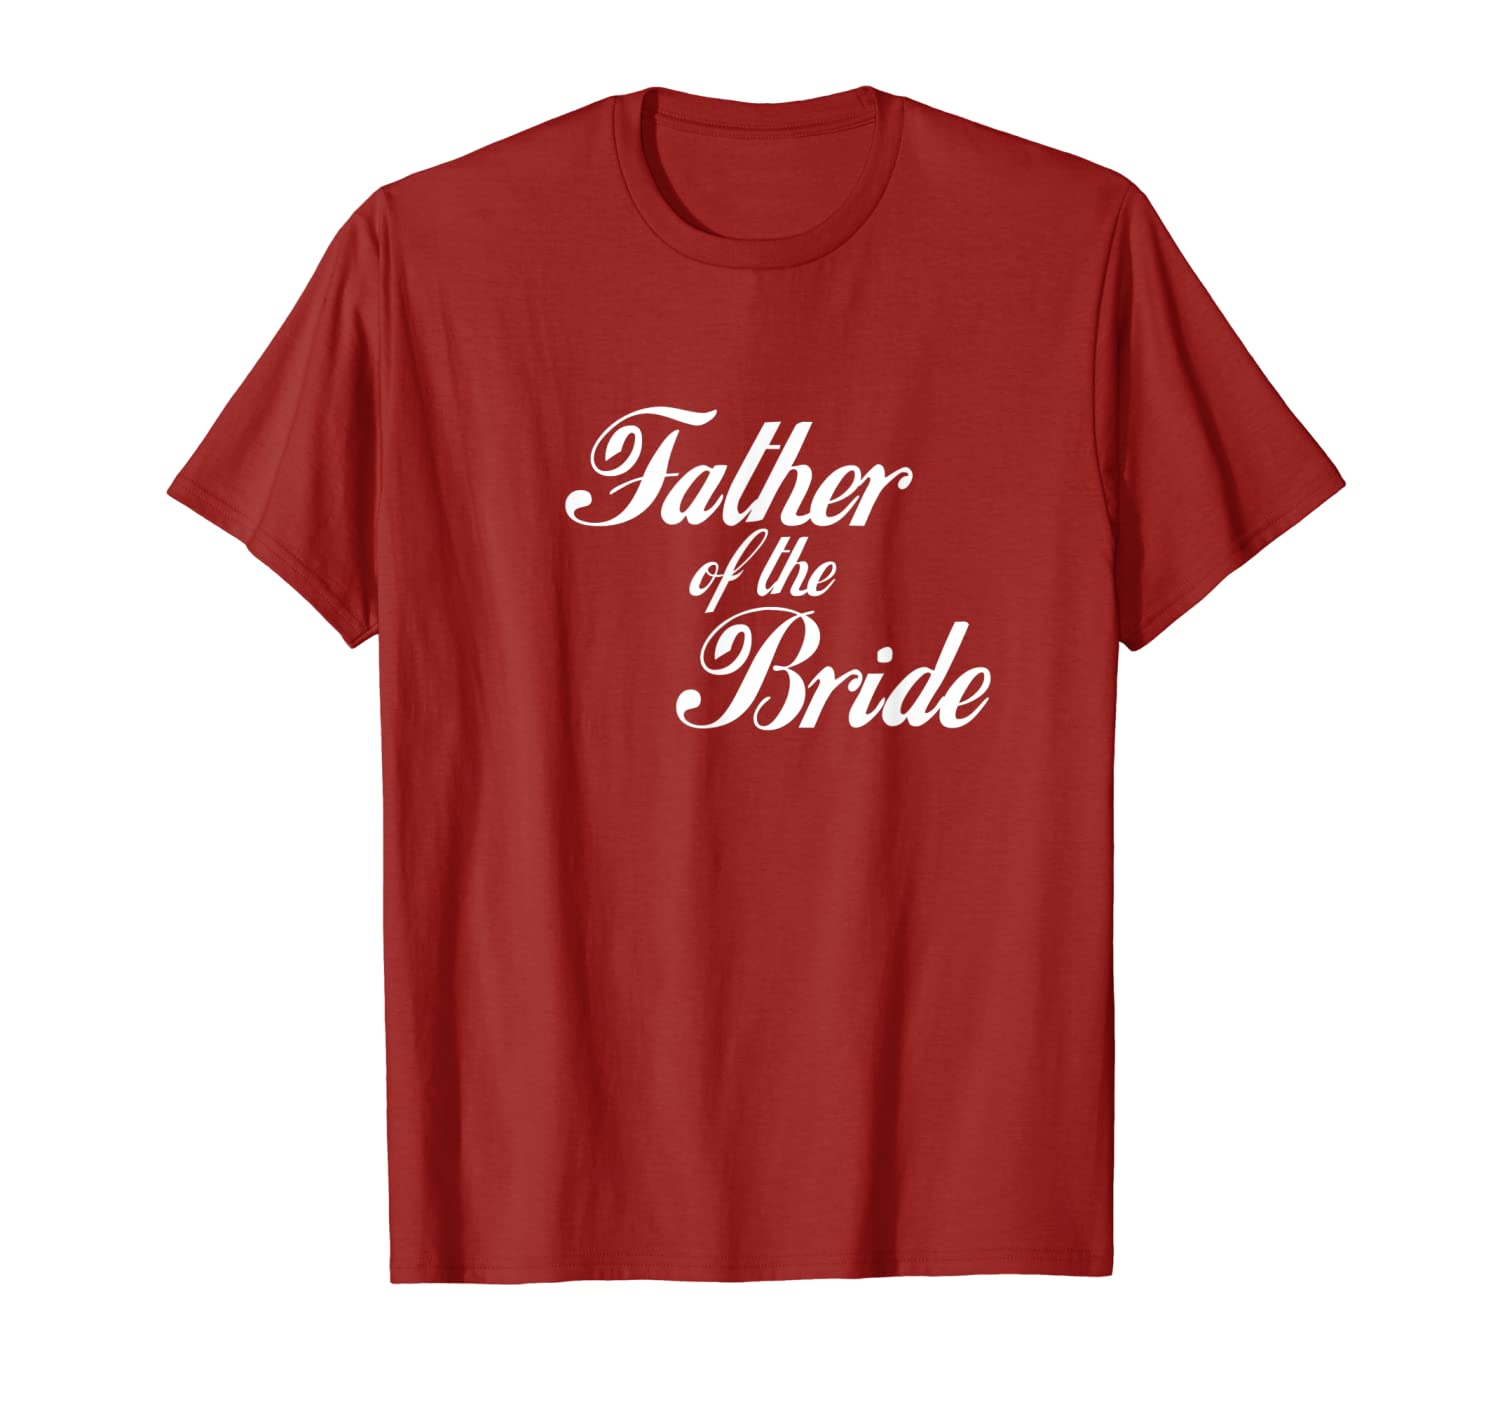 6637faab Amazon.com: Mens Father of the Bride T-Shirt: Clothing